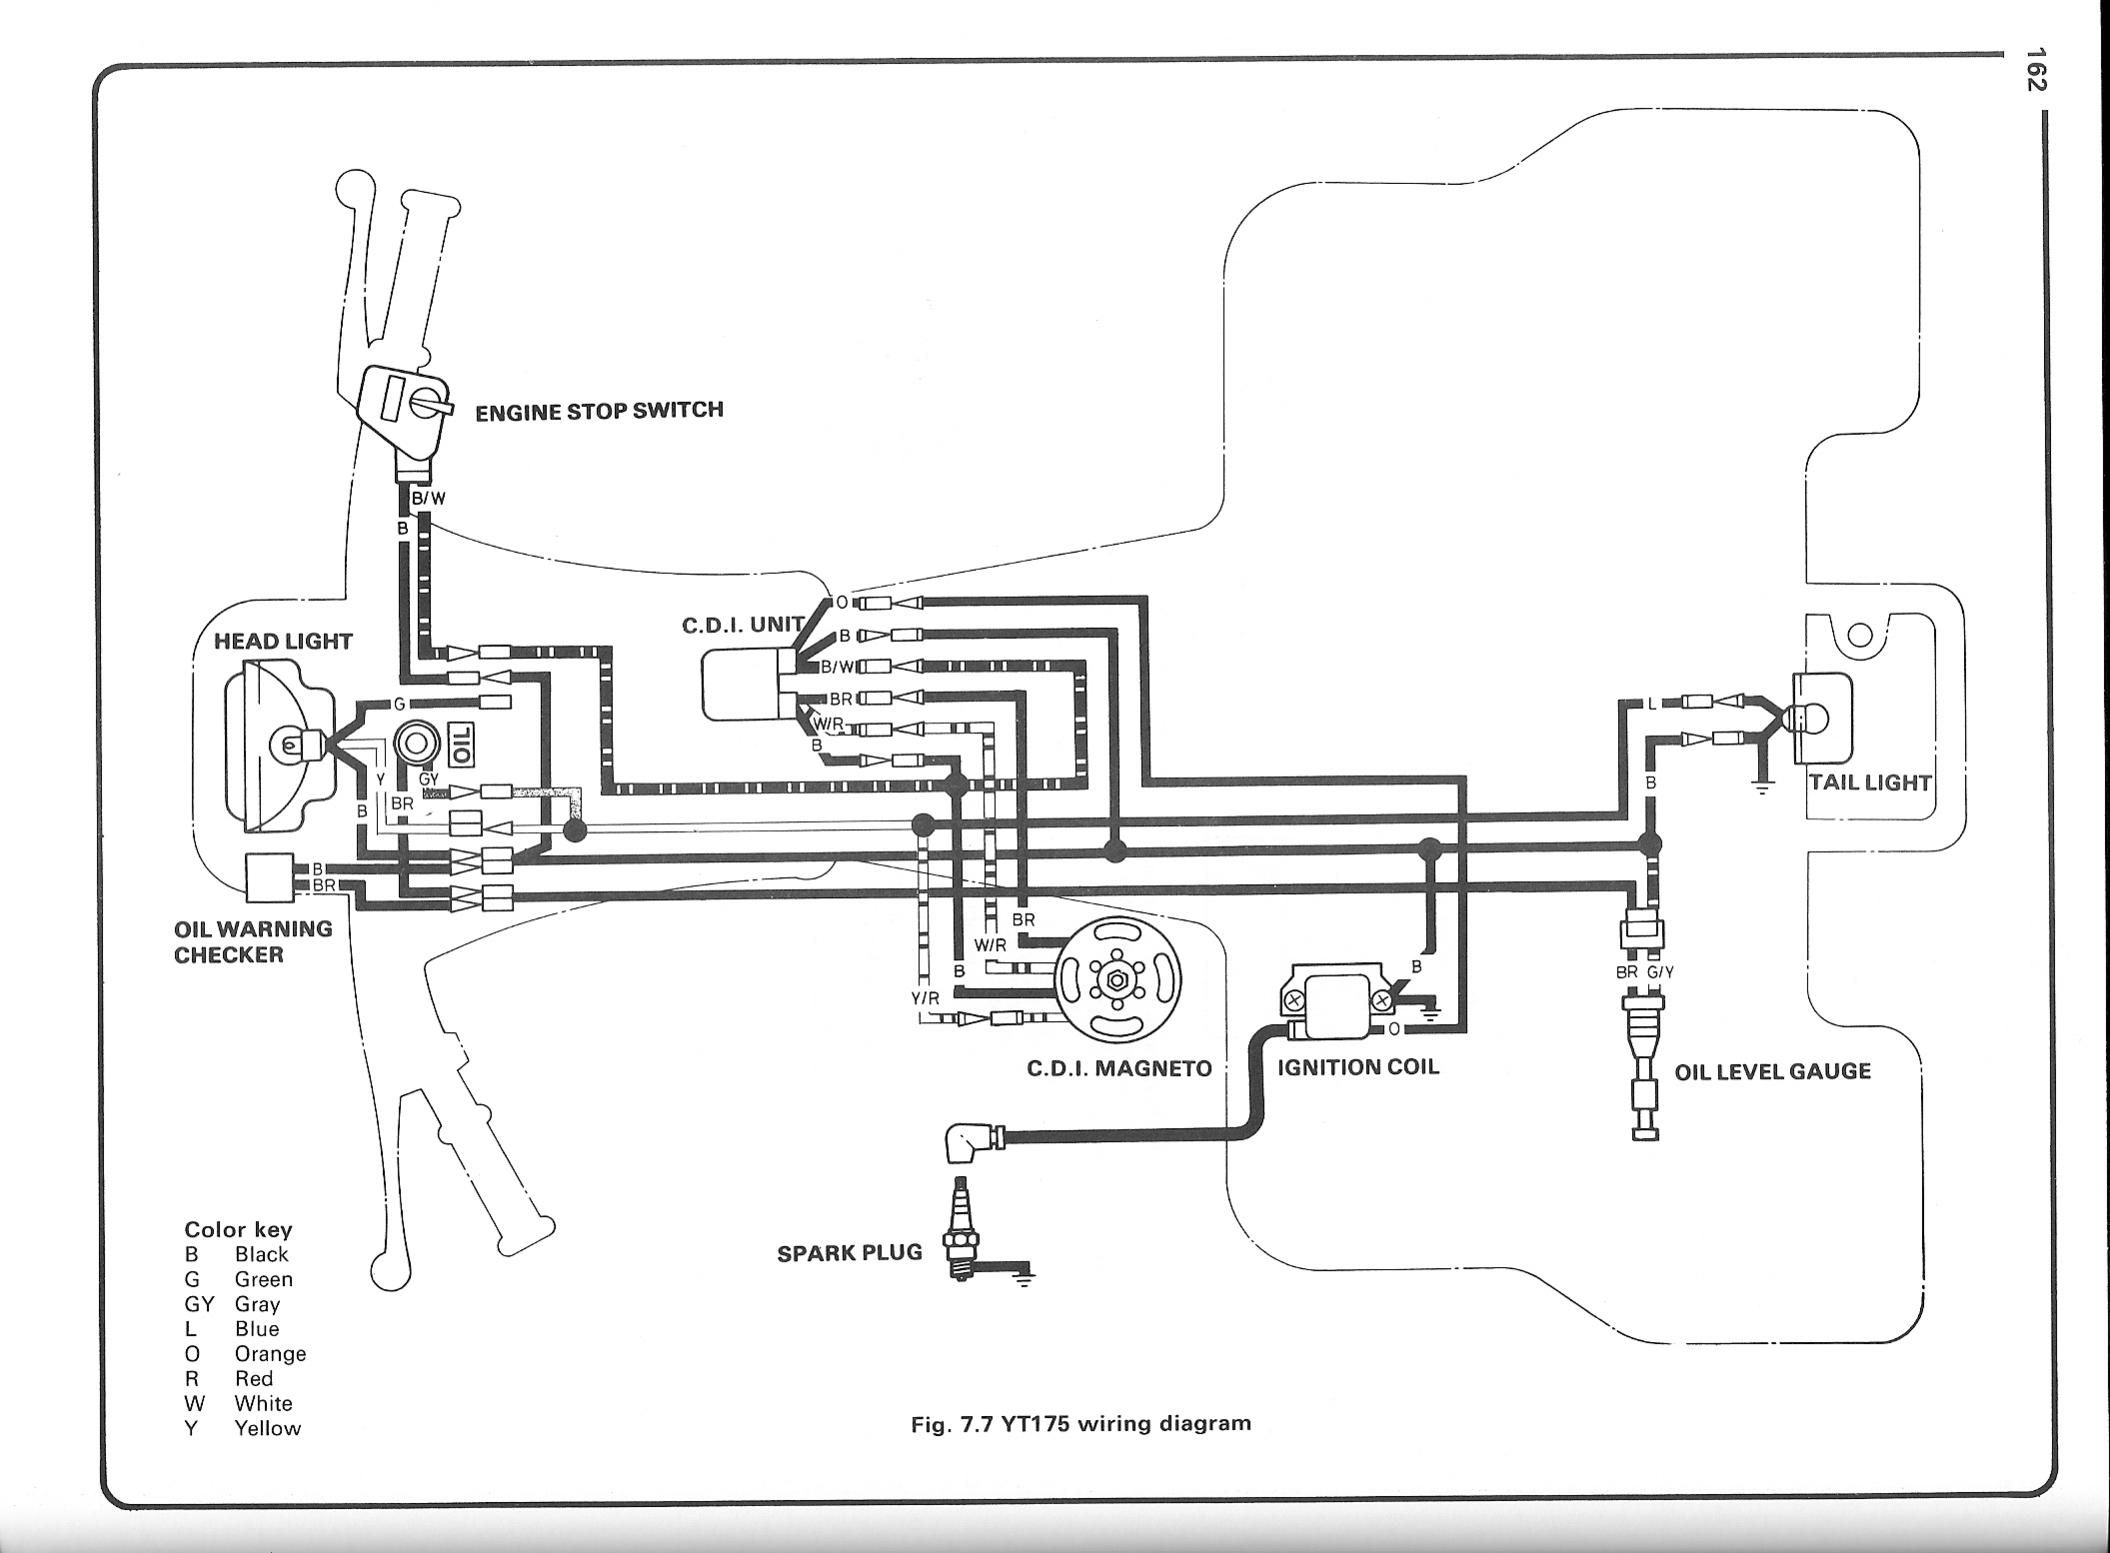 dc5d677d6940efc7ccfabdc3461a3c35 moto 4 plows wiring diagrams wiring diagrams  at readyjetset.co